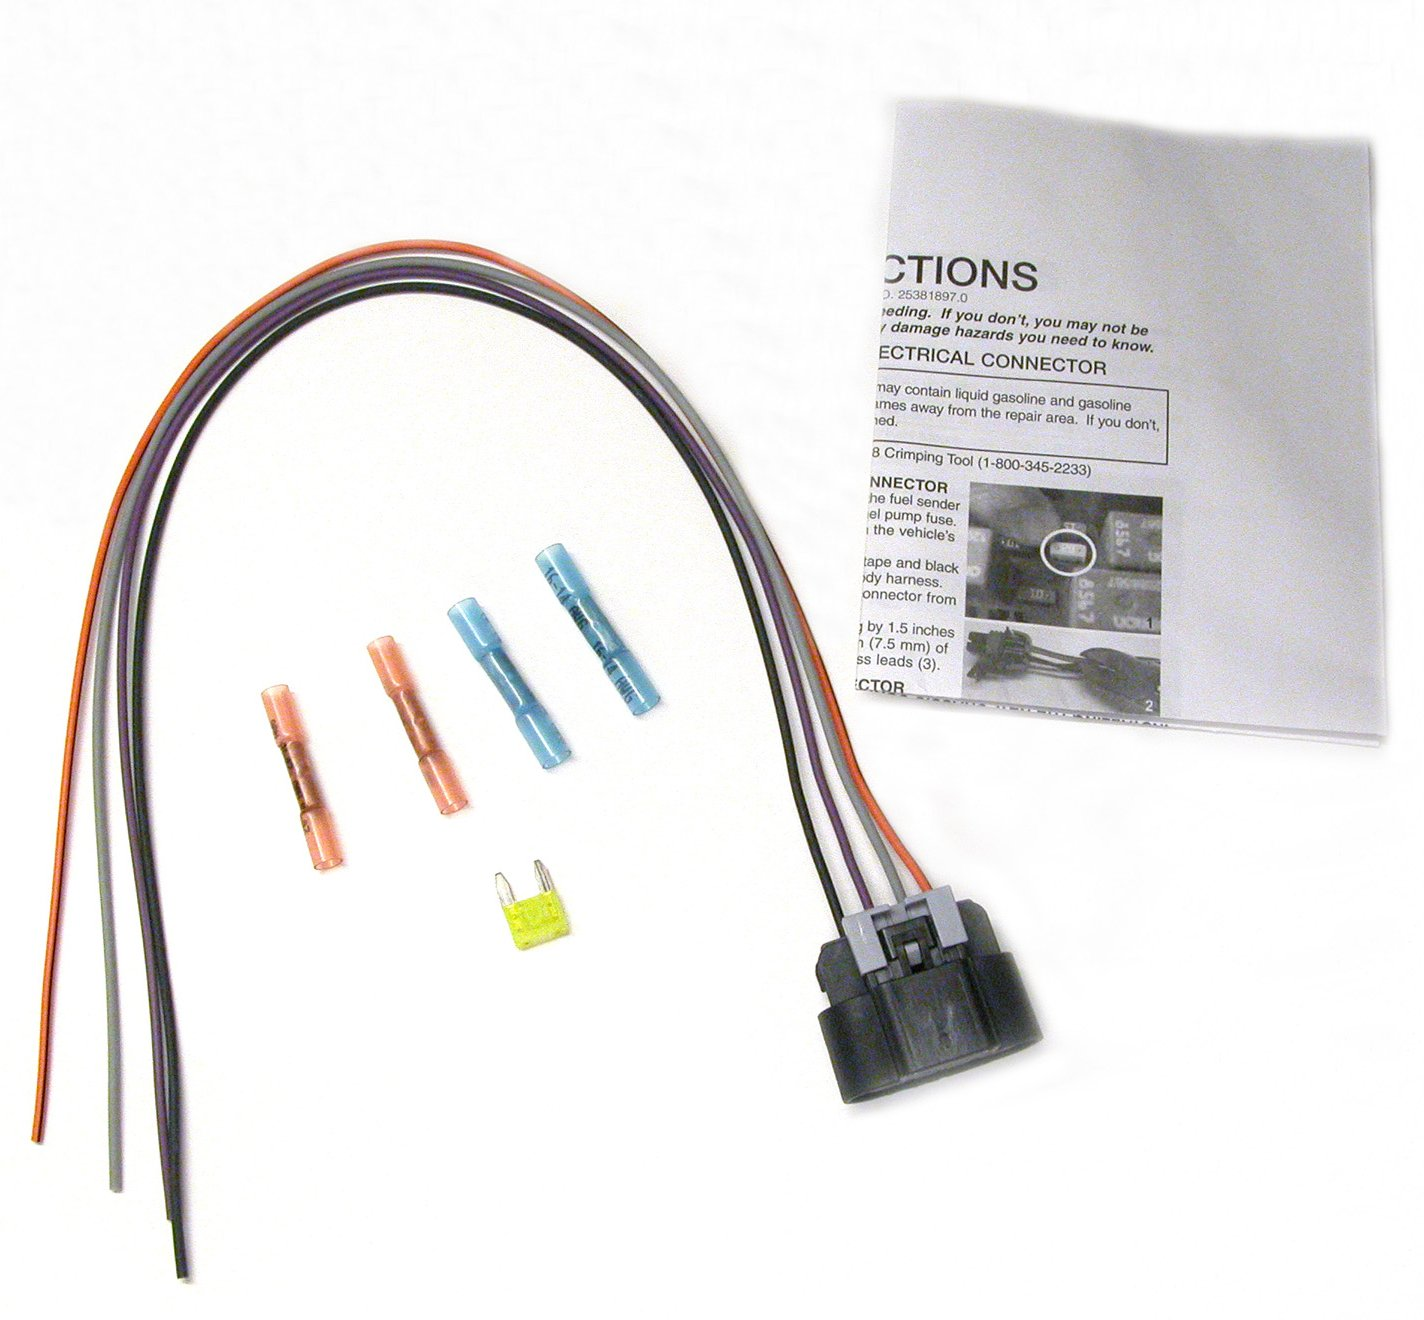 Amazon.com: Delphi FA10003 Fuel Pump Wiring Harness: Automotive